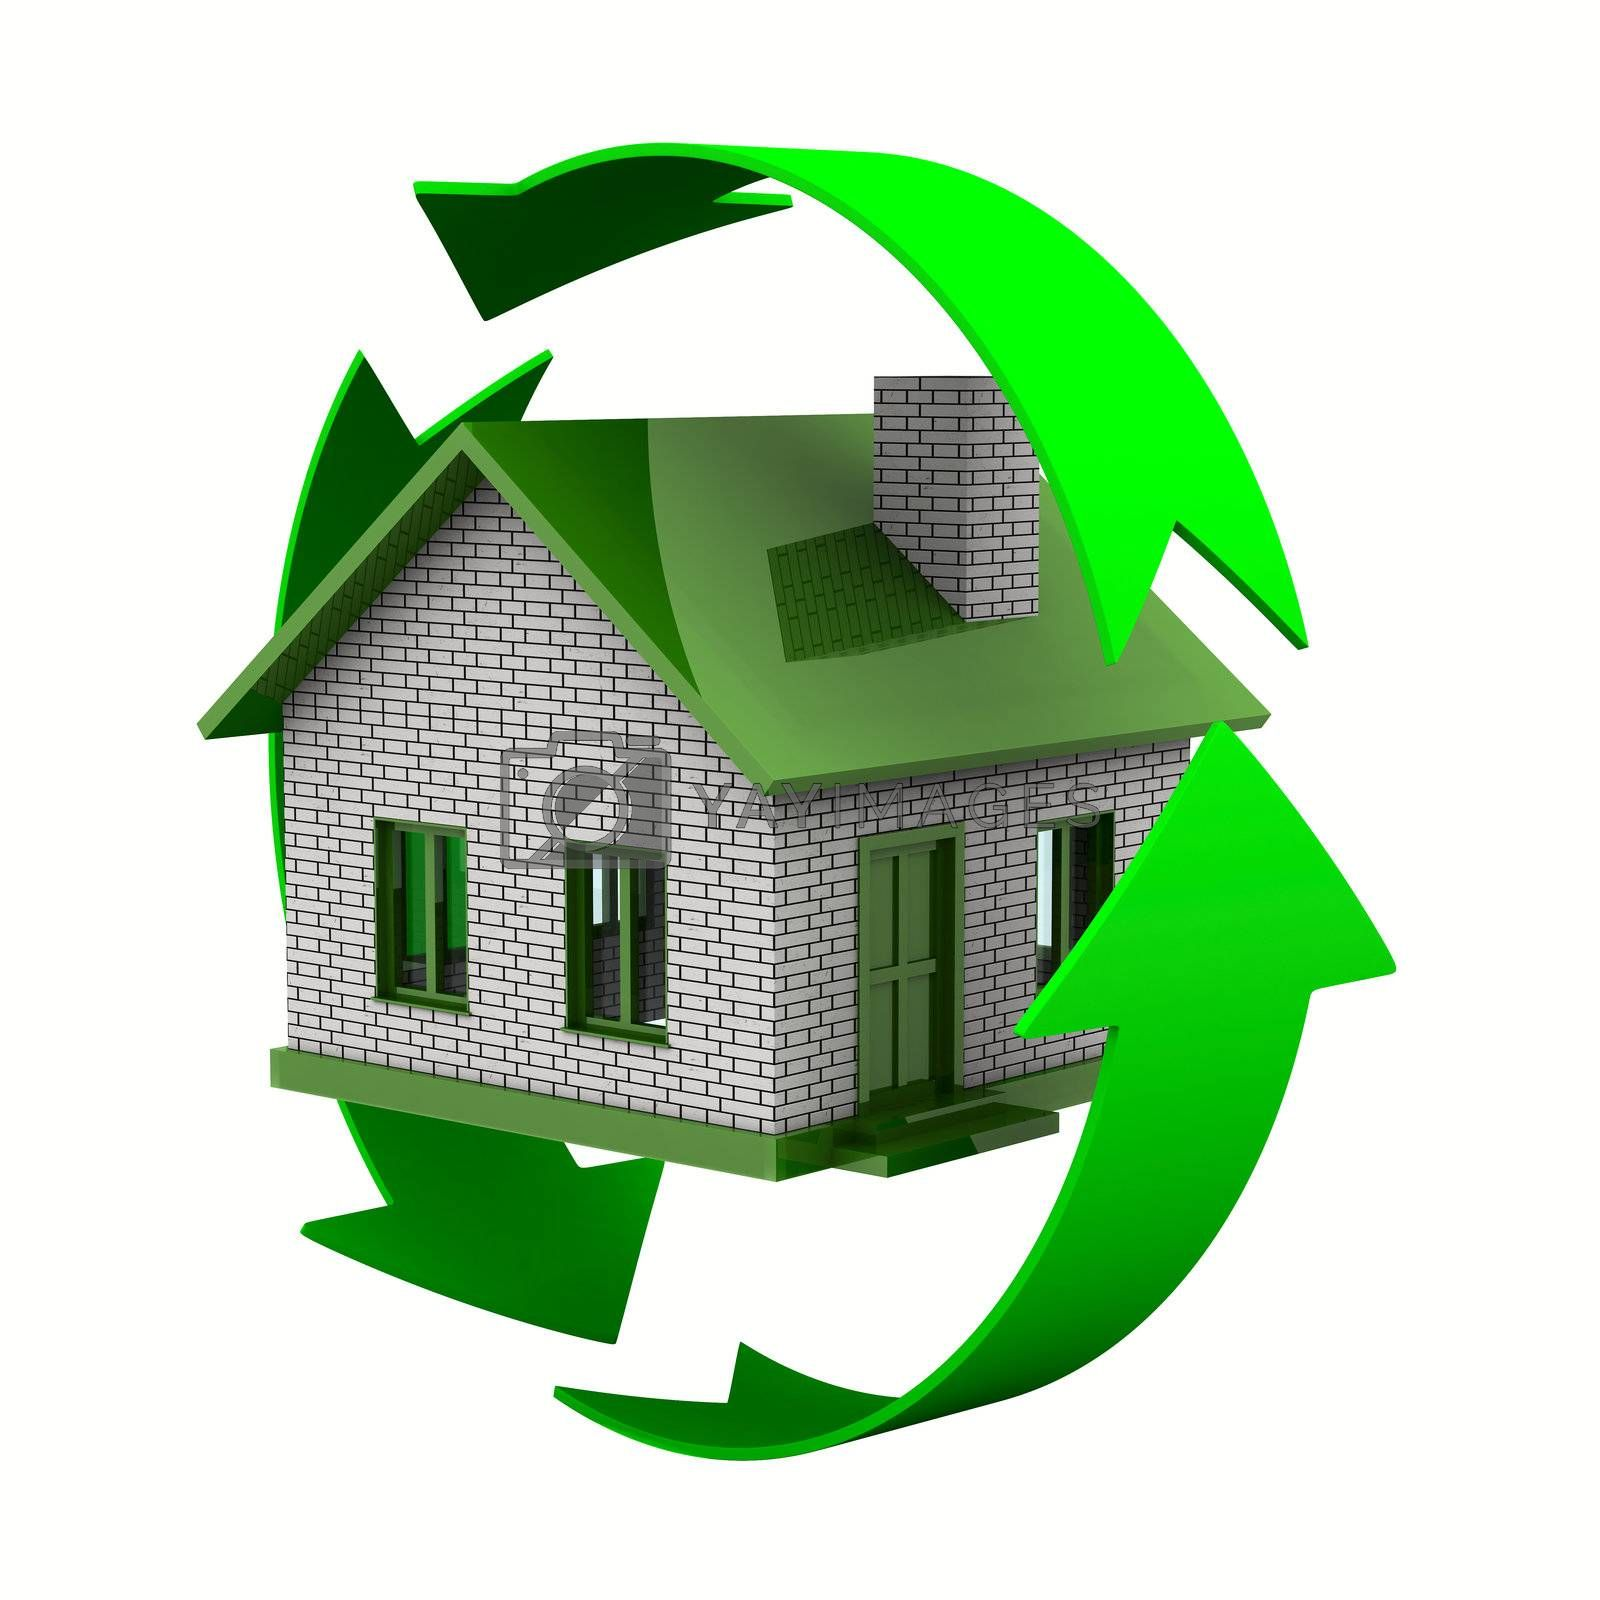 ecological house. Isolated 3D image on white by ISerg